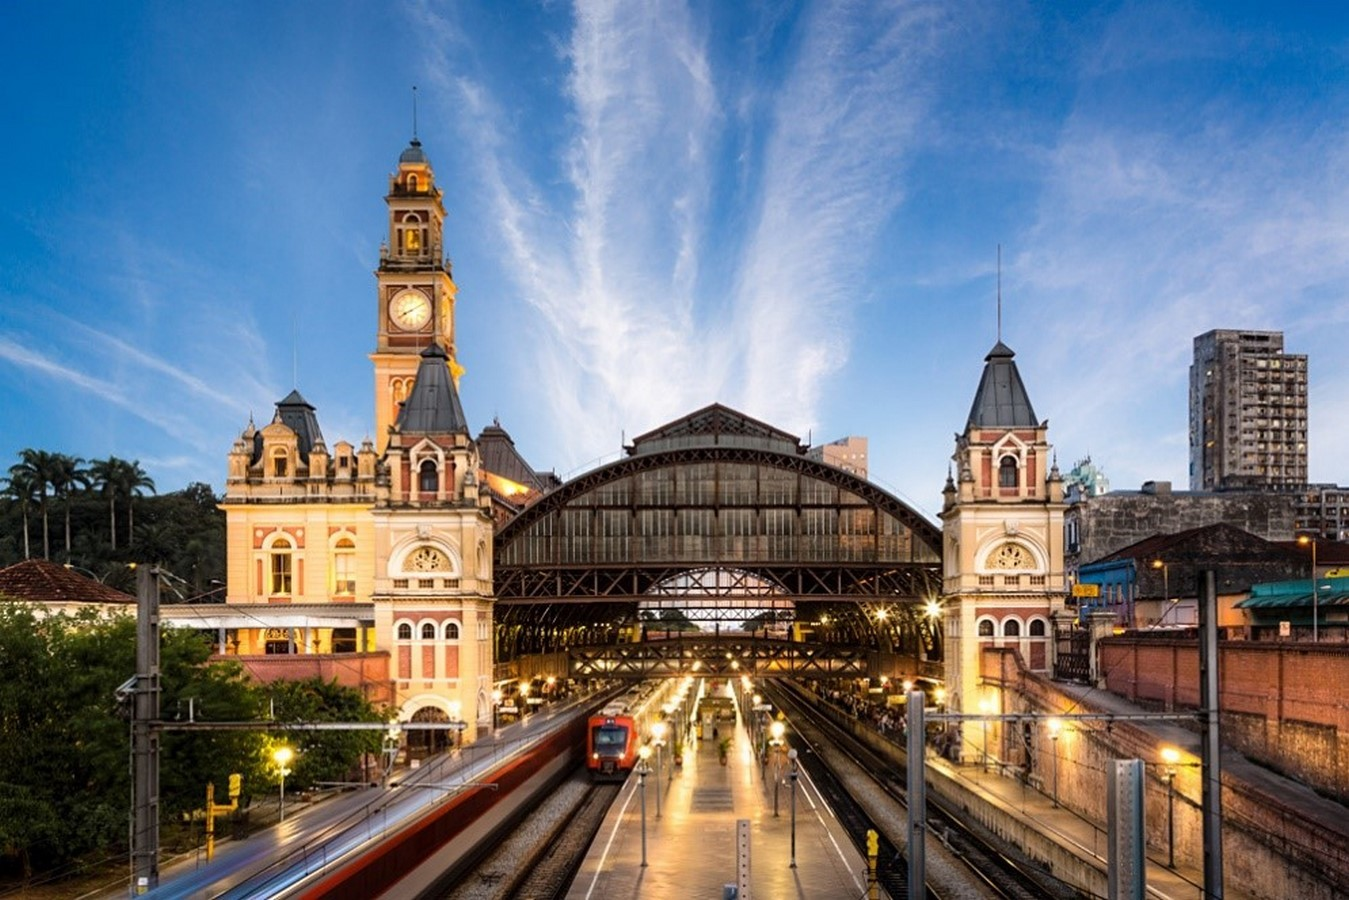 15 Beautiful Railway Stations around the world - Sheet5